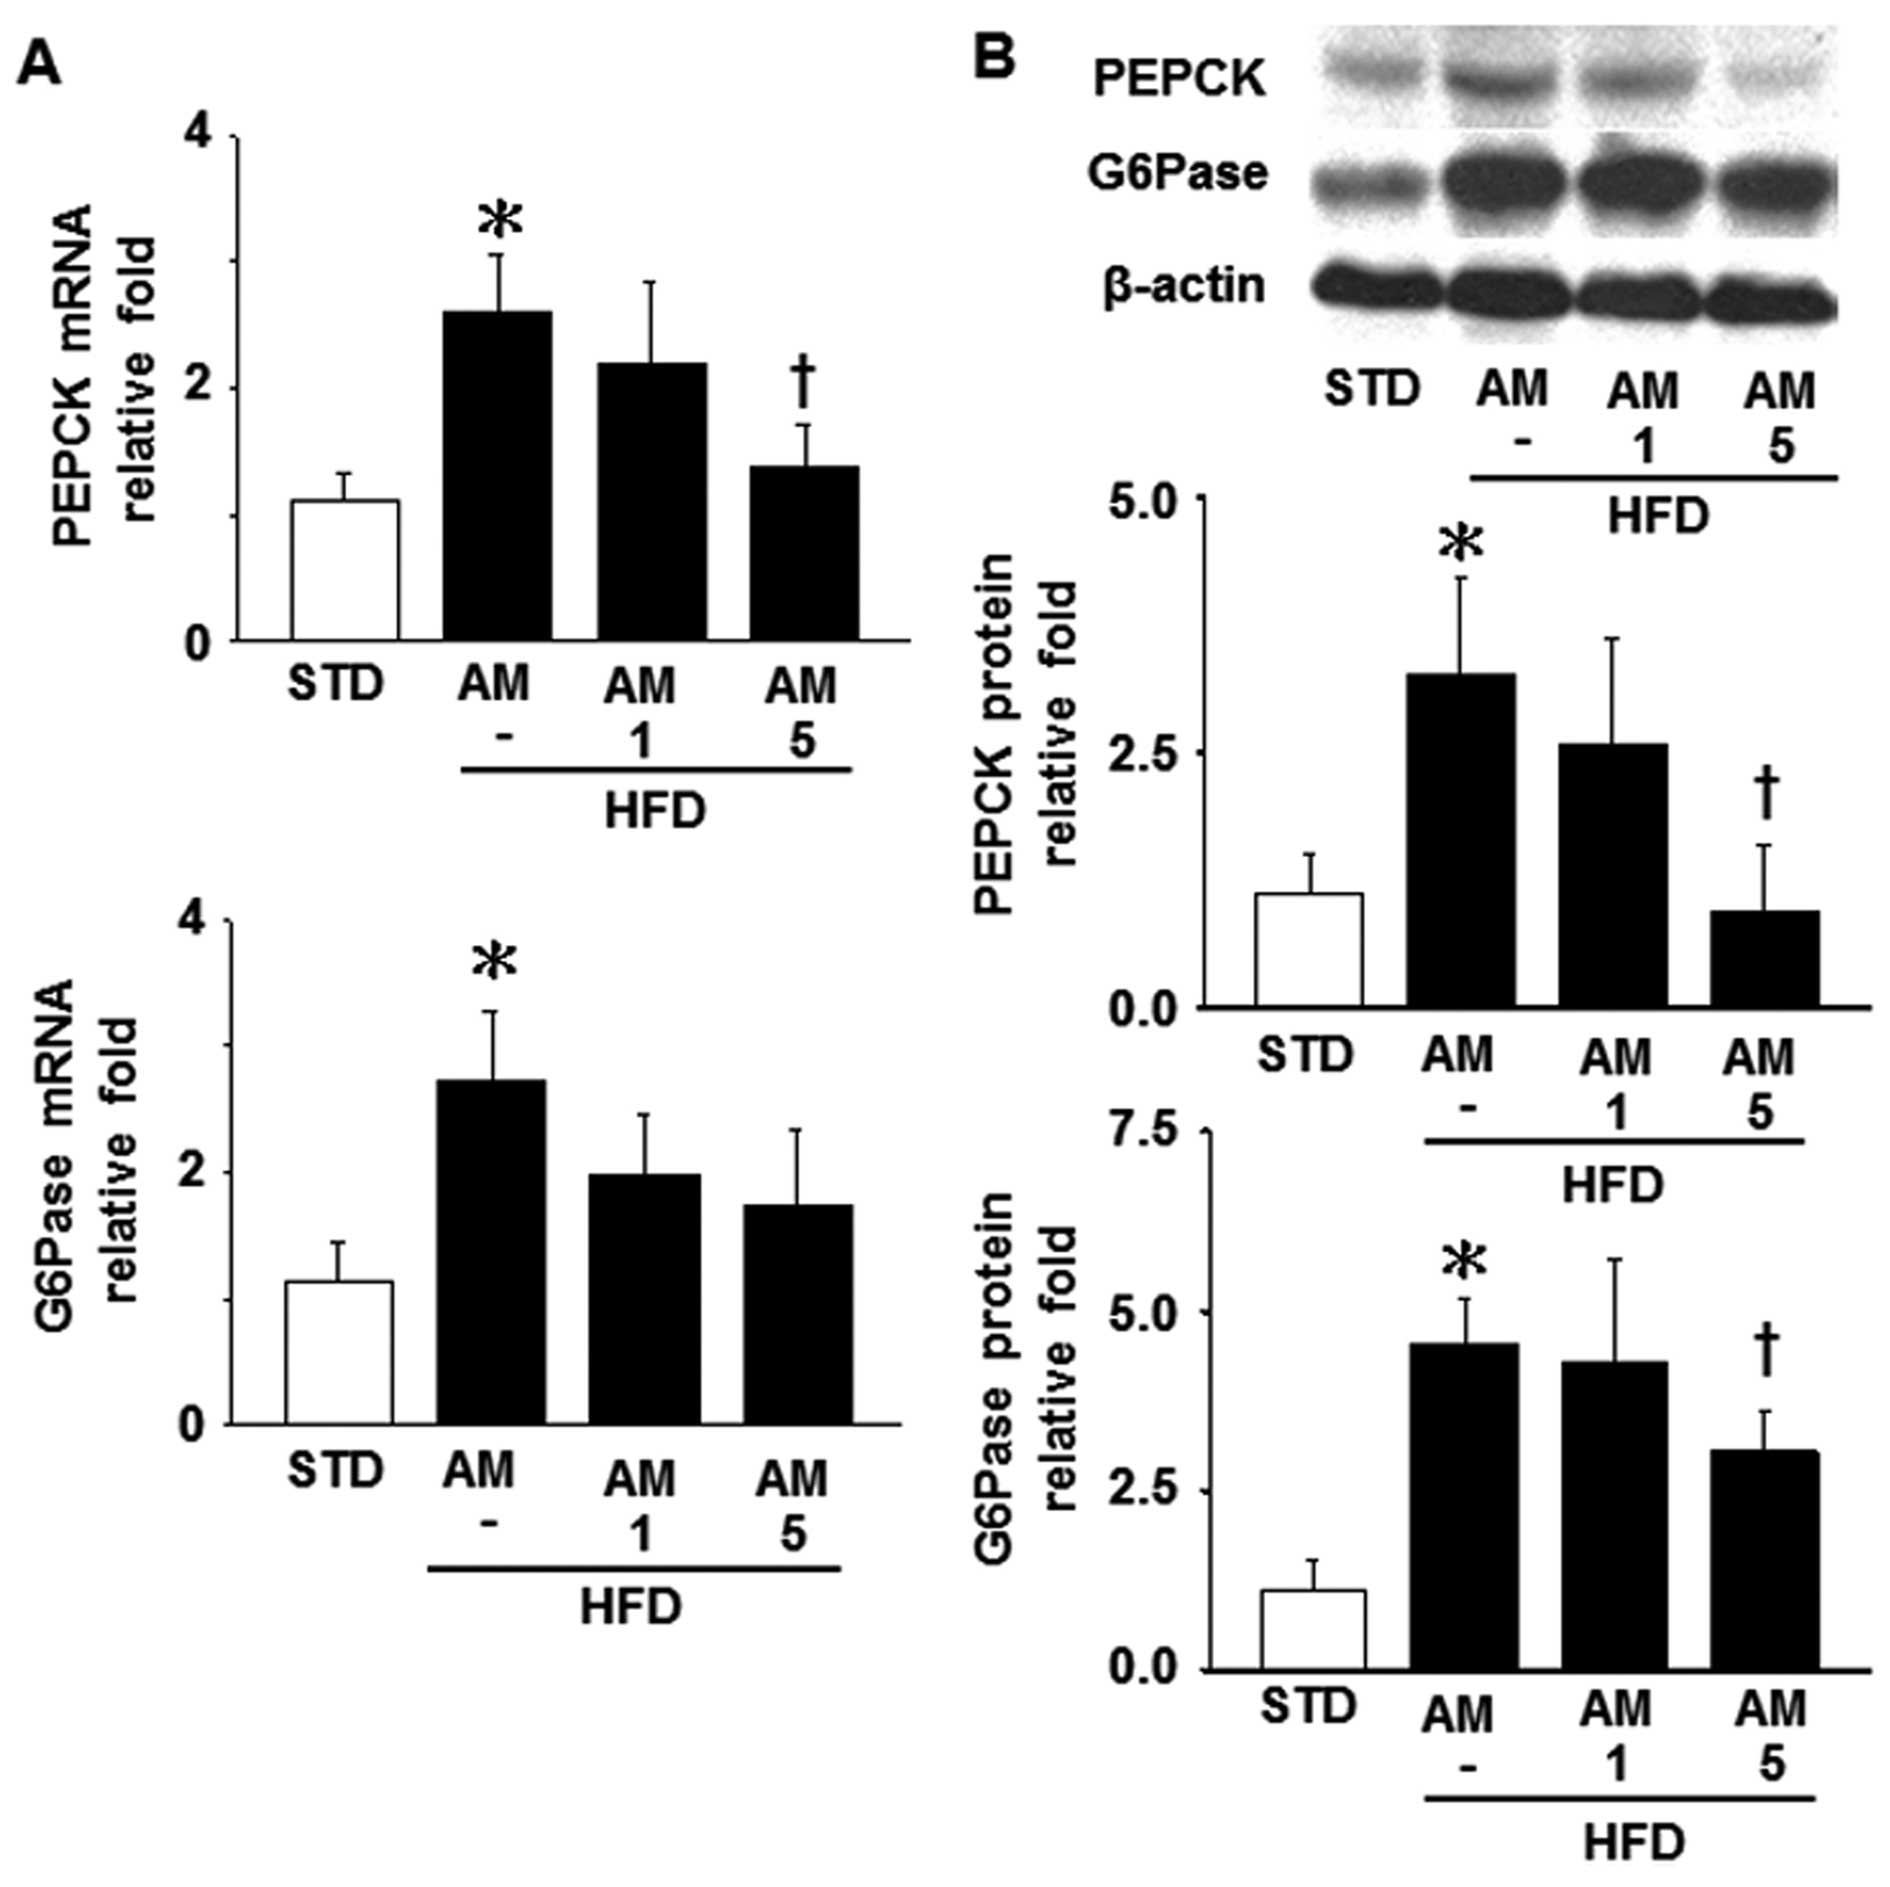 determine the activity of g6pase Transfection analysis was performed to determine the effects of smek/pp4c expression on crtc2- or foxo1a- dependent activation of g6pase promoter activity in hepg2.